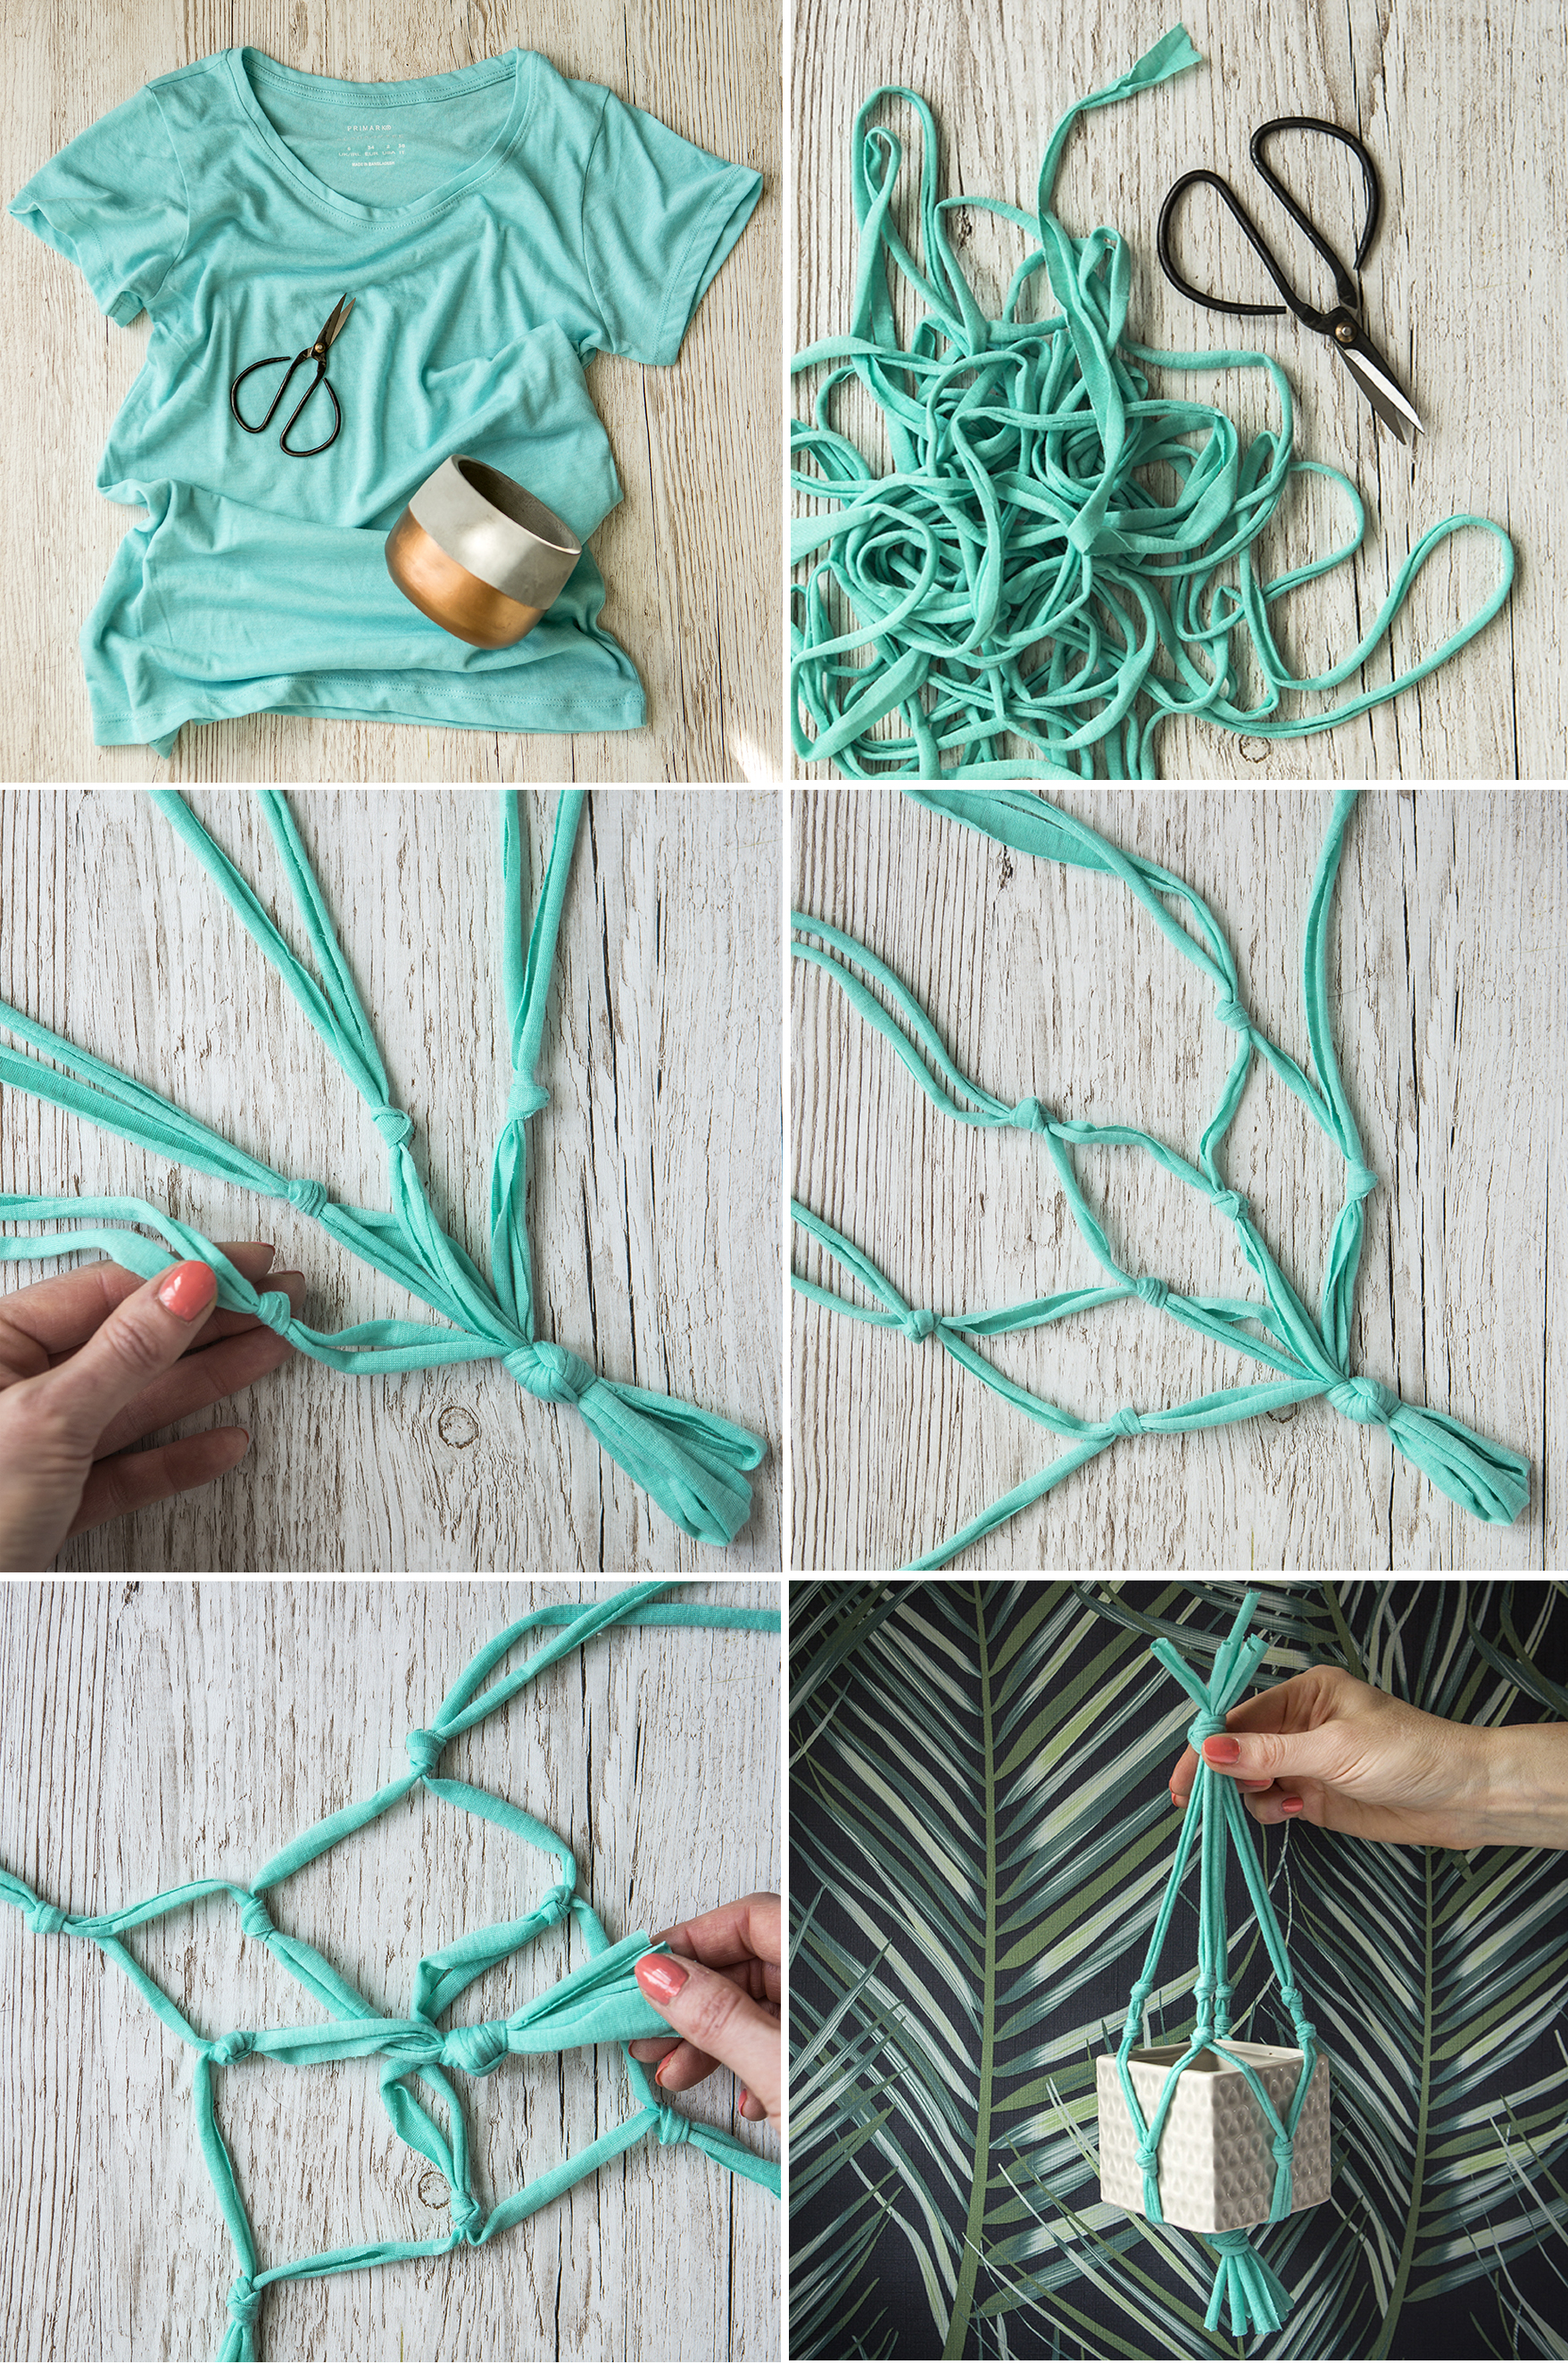 T-Shirt Yarn Macrame | Stacy Grant | Craft Photography